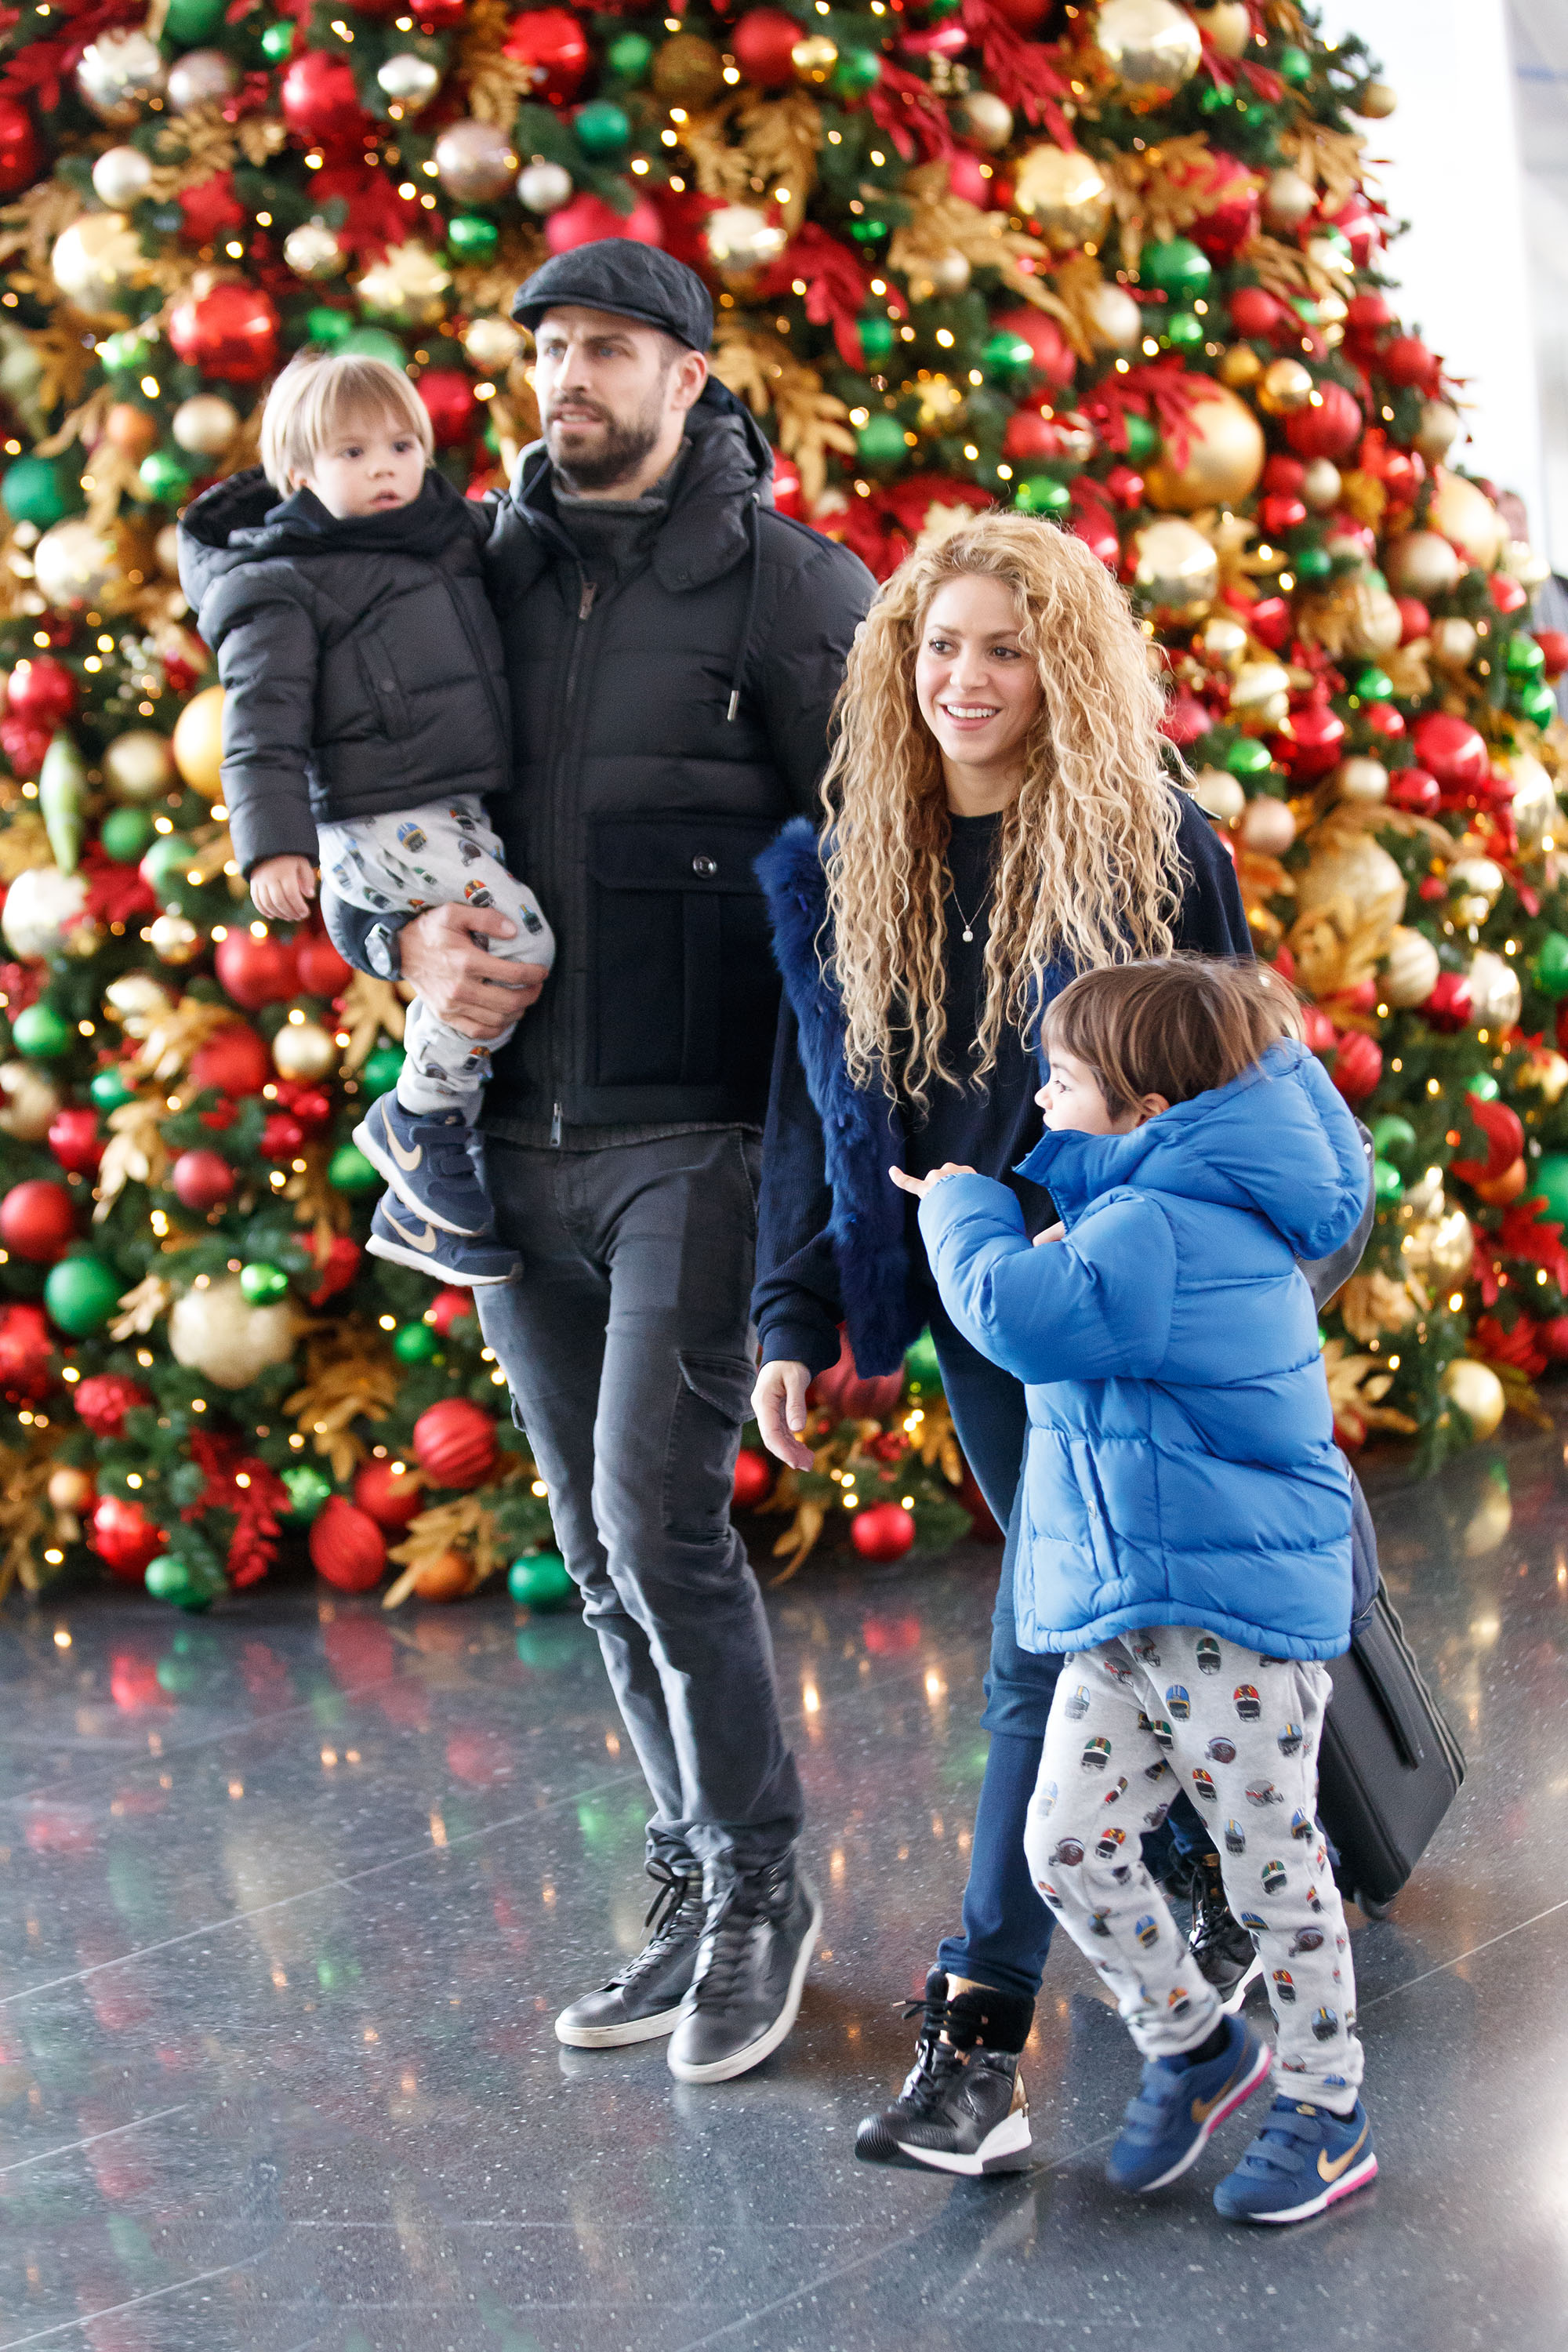 Shakira and Gerard Pique and their kids Milan Pique Mebarak and Sasha Pique Mebarak walk past a pretty Christmas tree at the airport in New York <P> Pictured: Shakira and Gerard Pique, Milan Pique Mebarak and Sasha Pique Mebarak <B>Ref: SPL1640267  241217  </B><BR/> Picture by: JAckson Lee/Splash<BR/> </P><P> <B>Splash News and Pictures</B><BR/> Los Angeles:310-821-2666<BR/> New York:212-619-2666<BR/> London:870-934-2666<BR/> <span id=